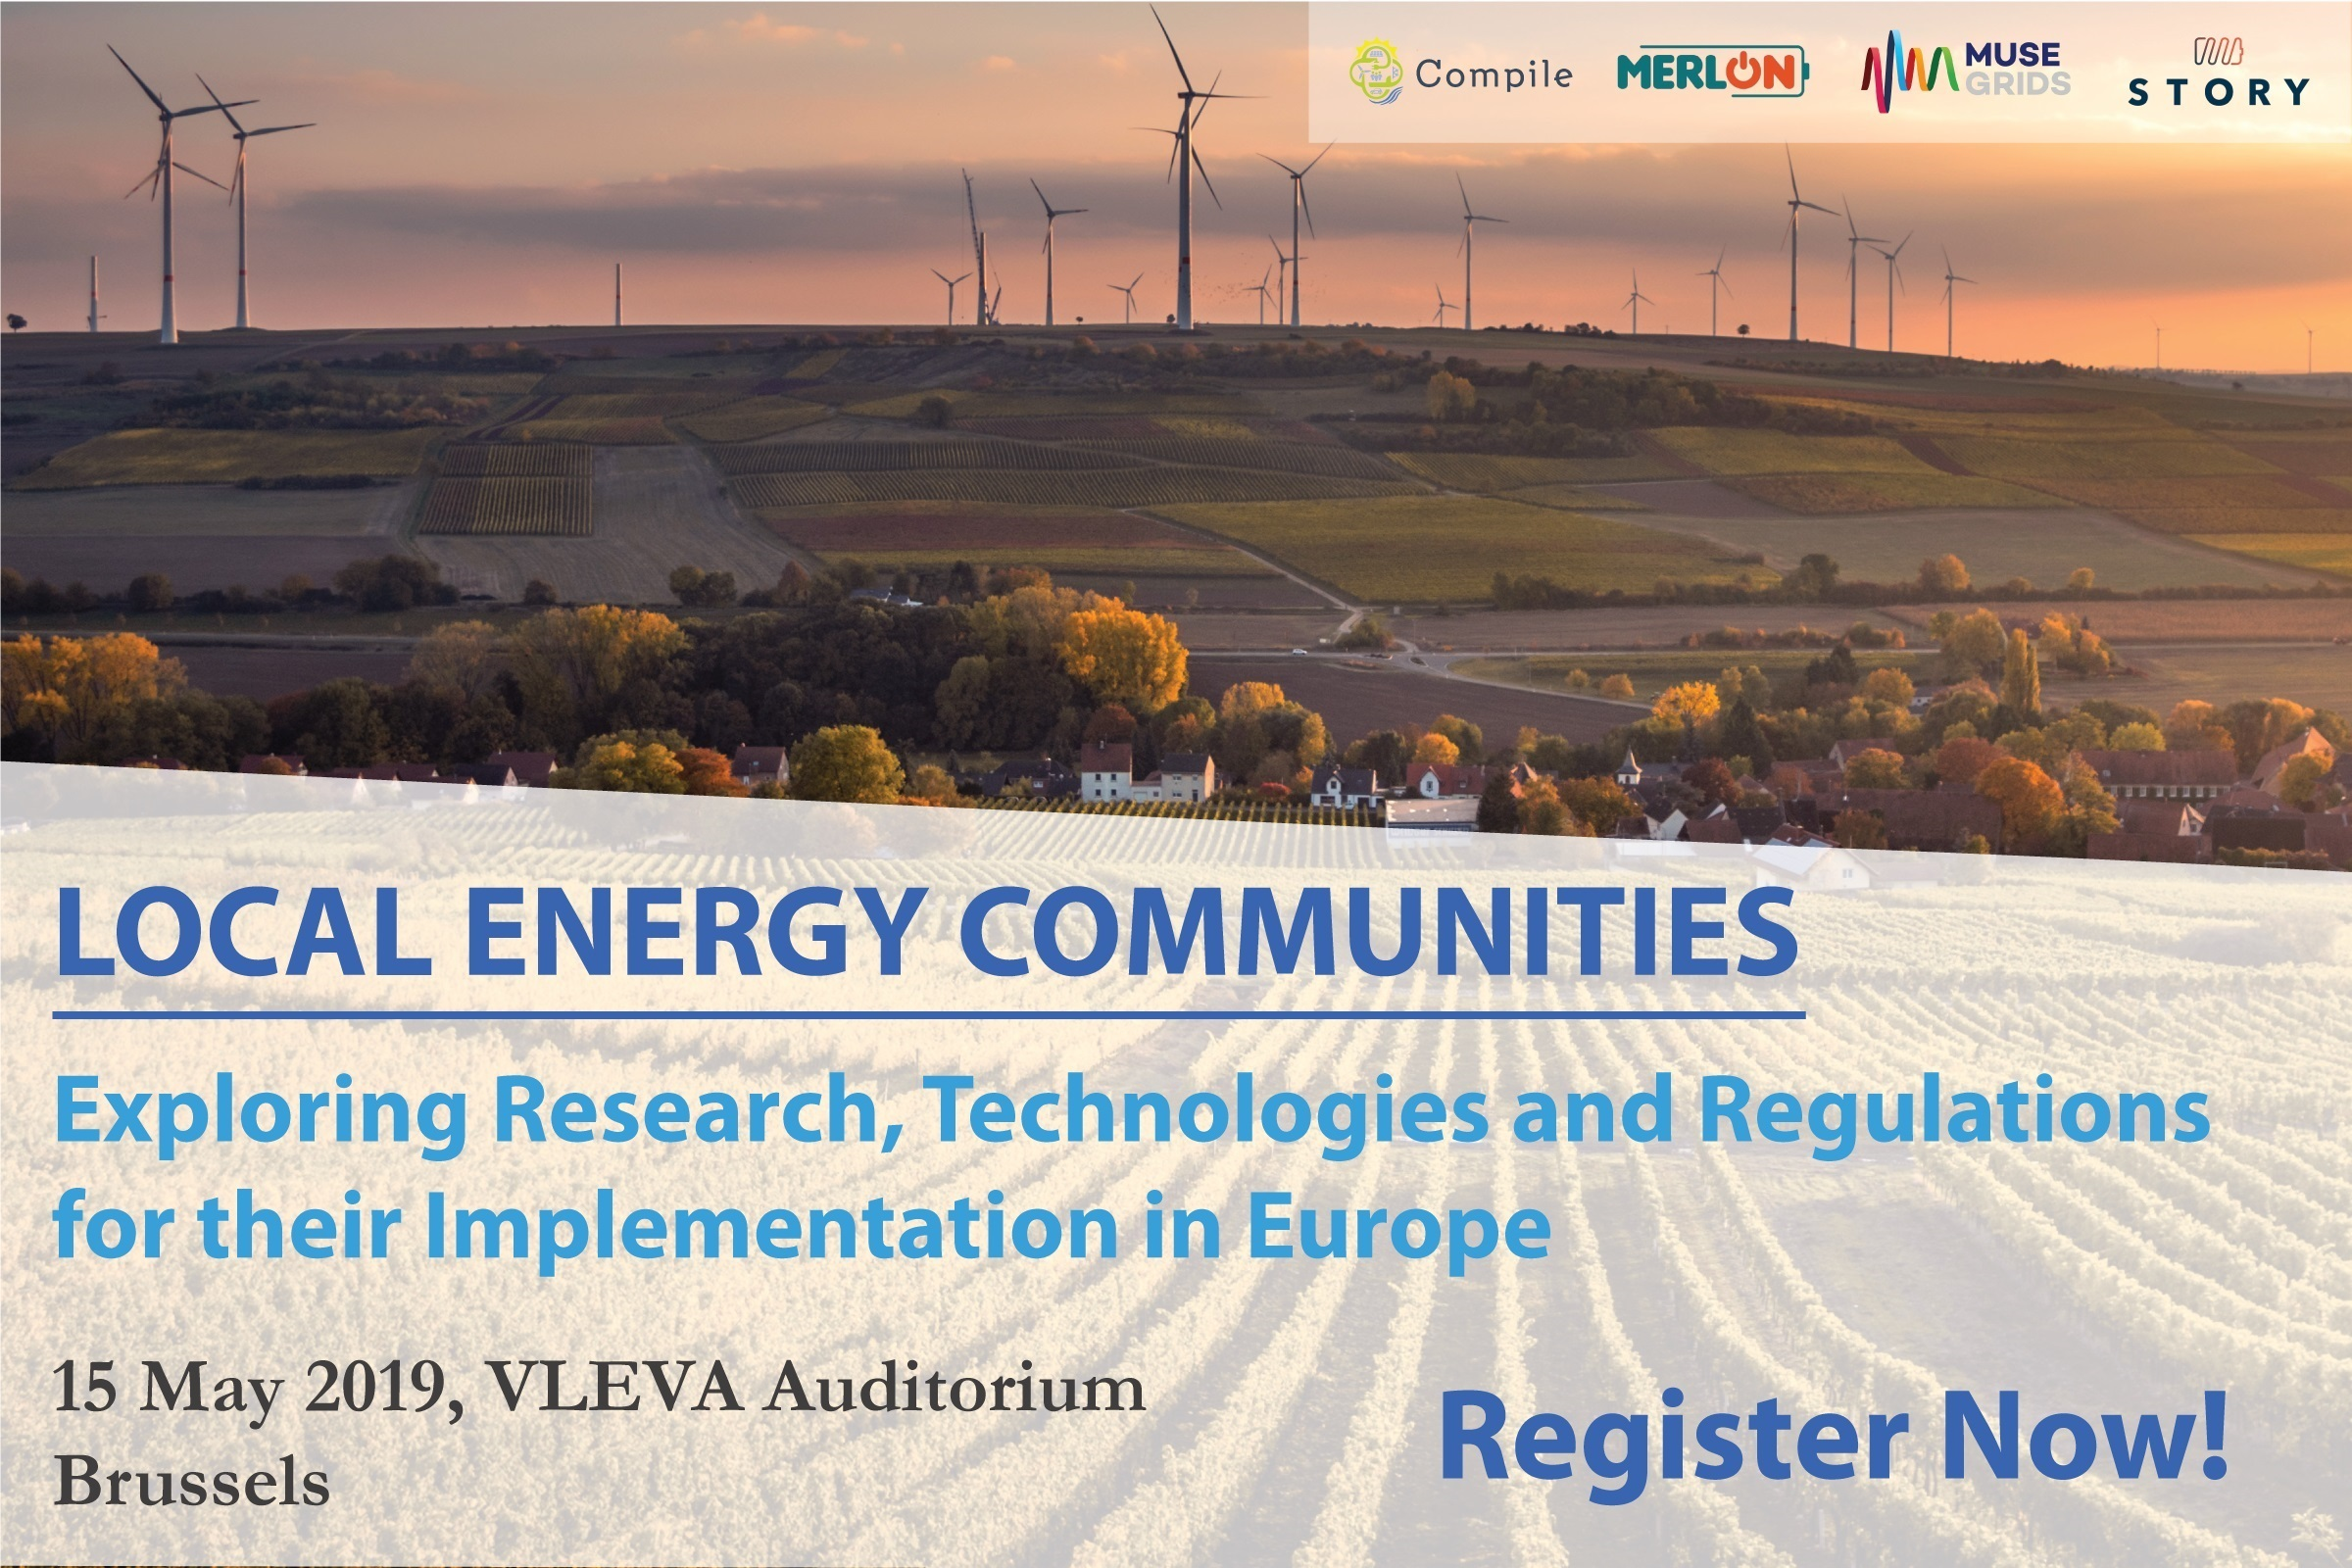 Workshop on Local Energy Communities - Exploring